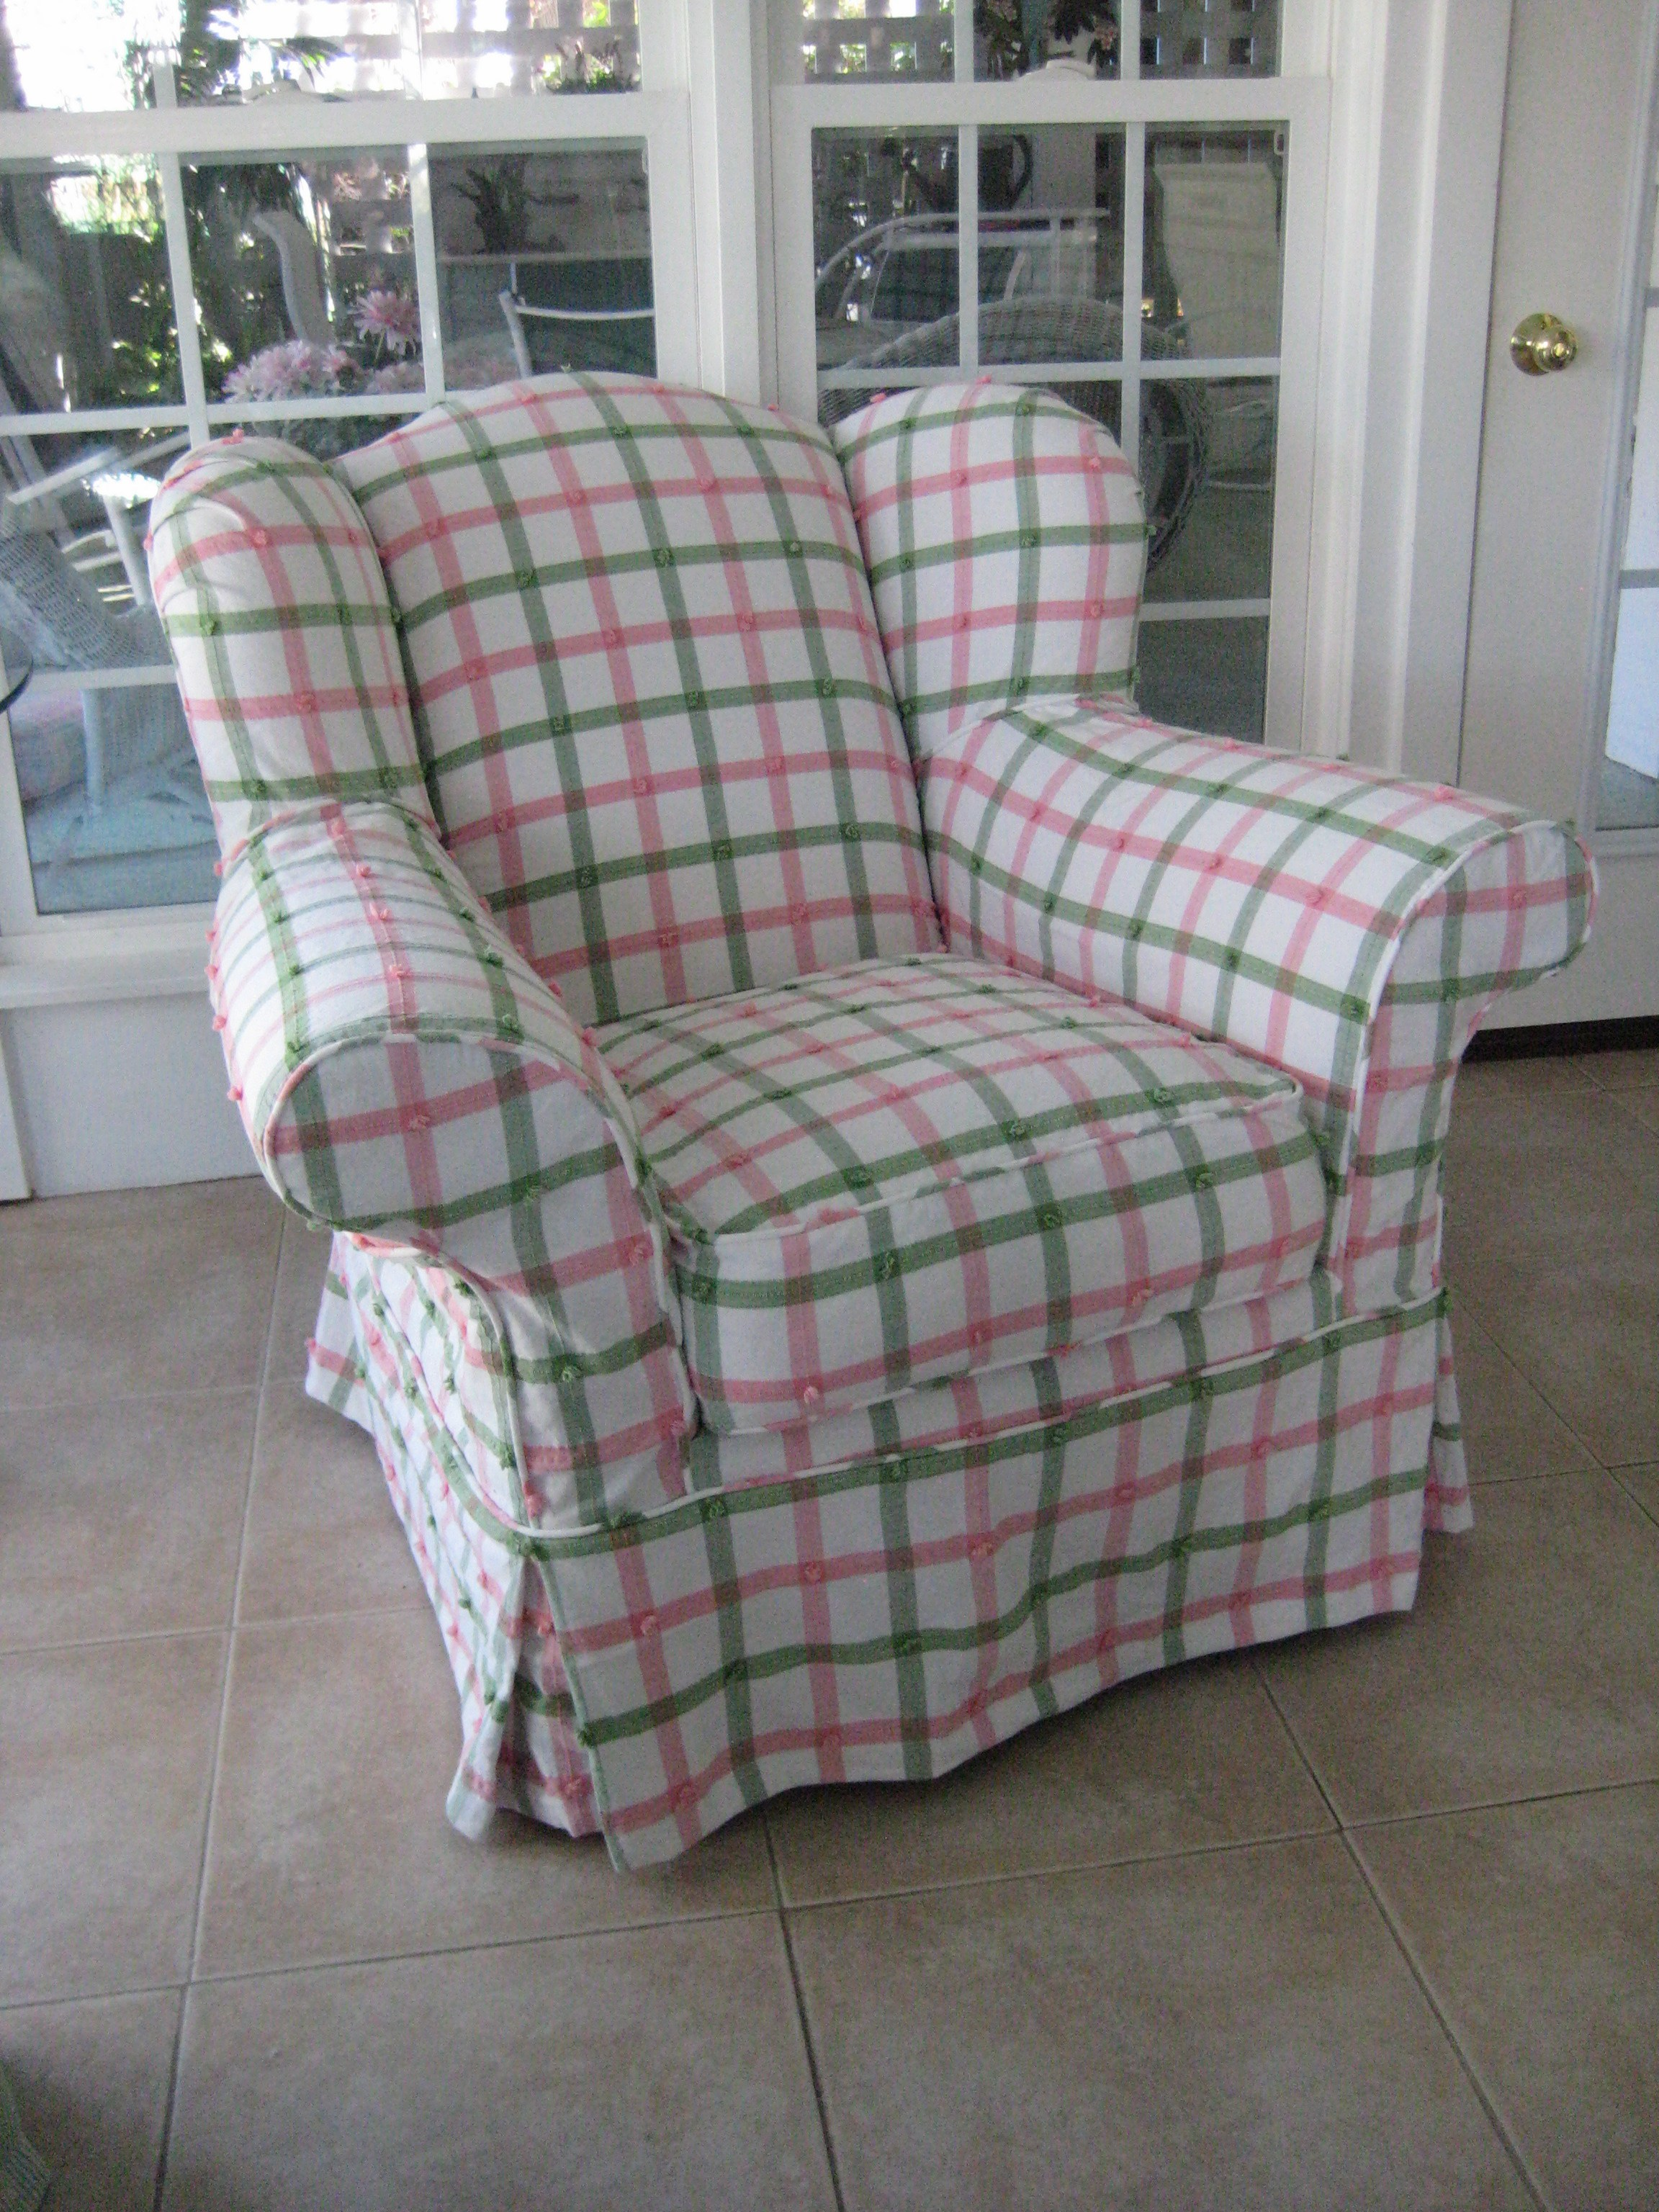 Overstuffed Wingback Chair Overstuffed Wing Chair Slip Covered In Plaid Explore